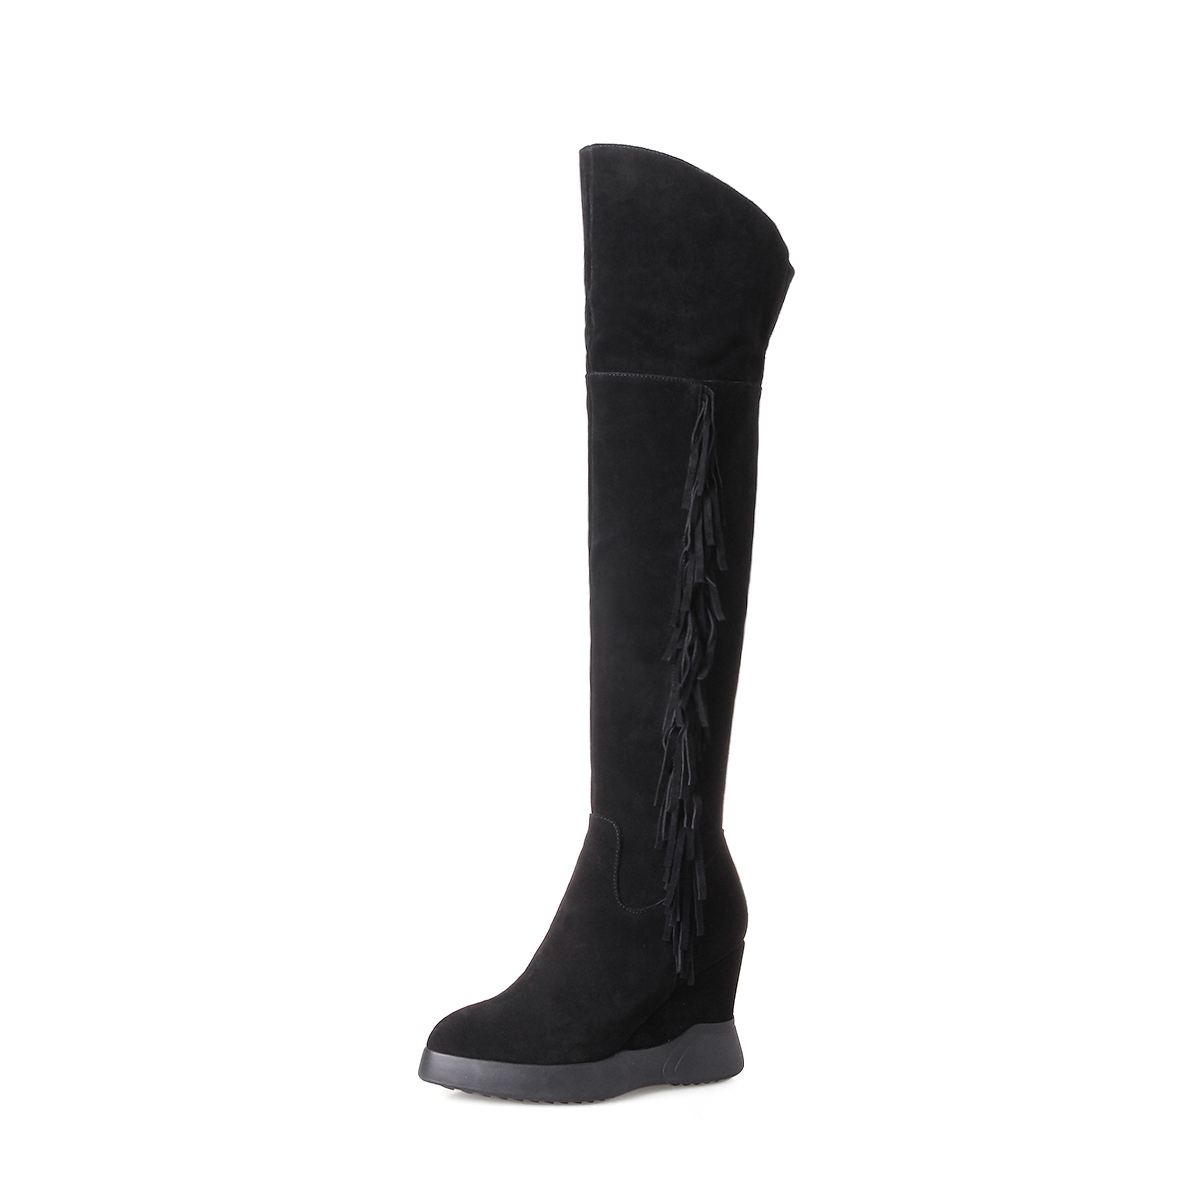 003e74029913 US  57 - Arden Furtado 2018 spring autumn platform pointed toe over the knee  high boots wedges boots woman shoes ladies - www.ardenfurtado.com